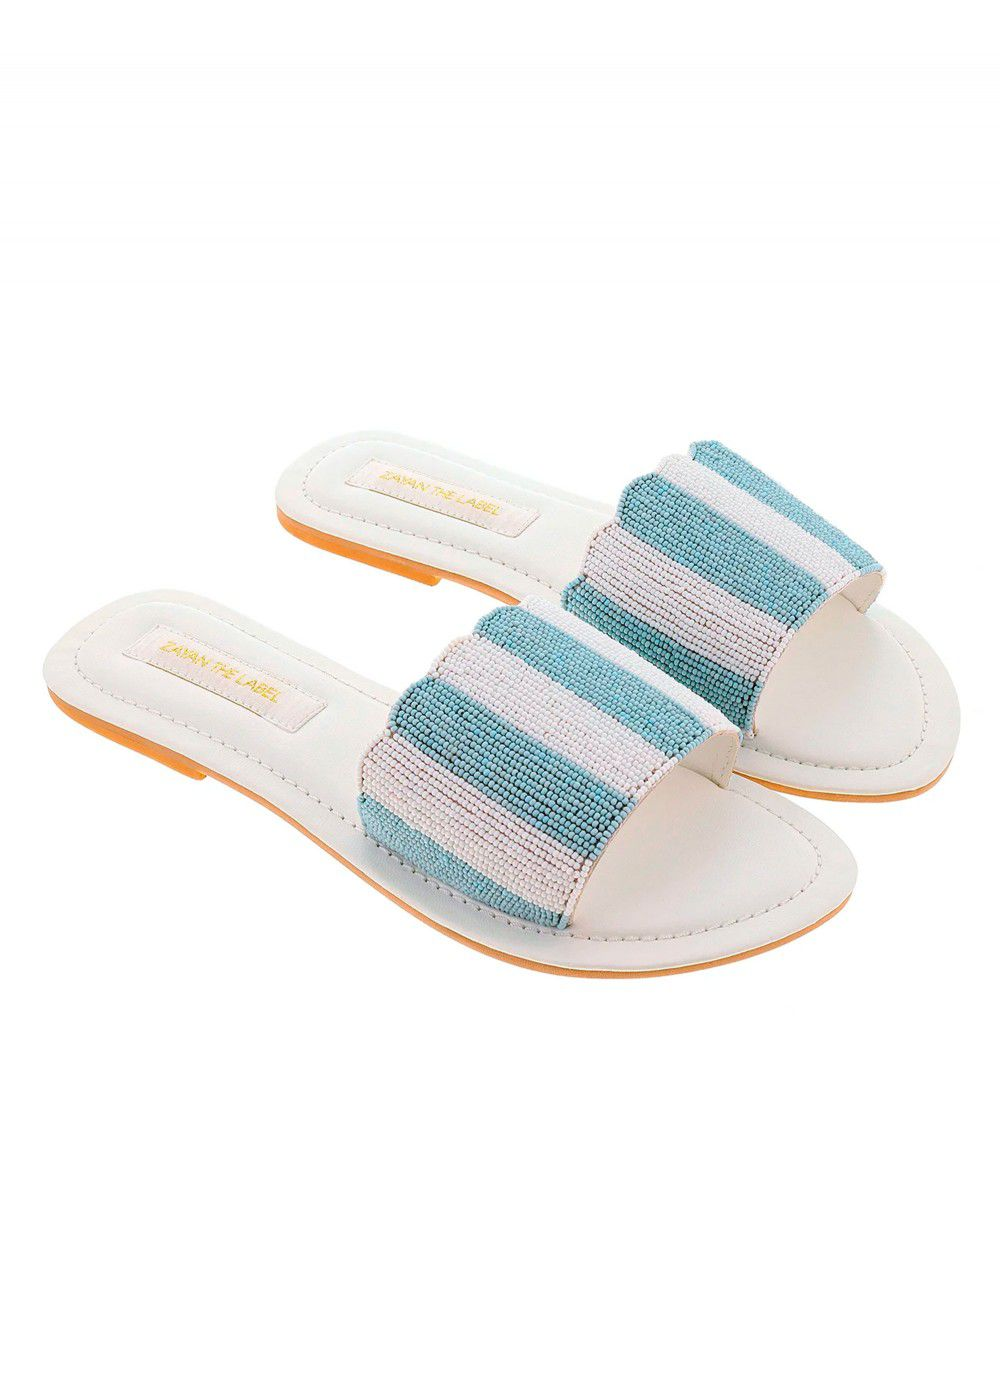 Zayan The Label Positano Blue Slides